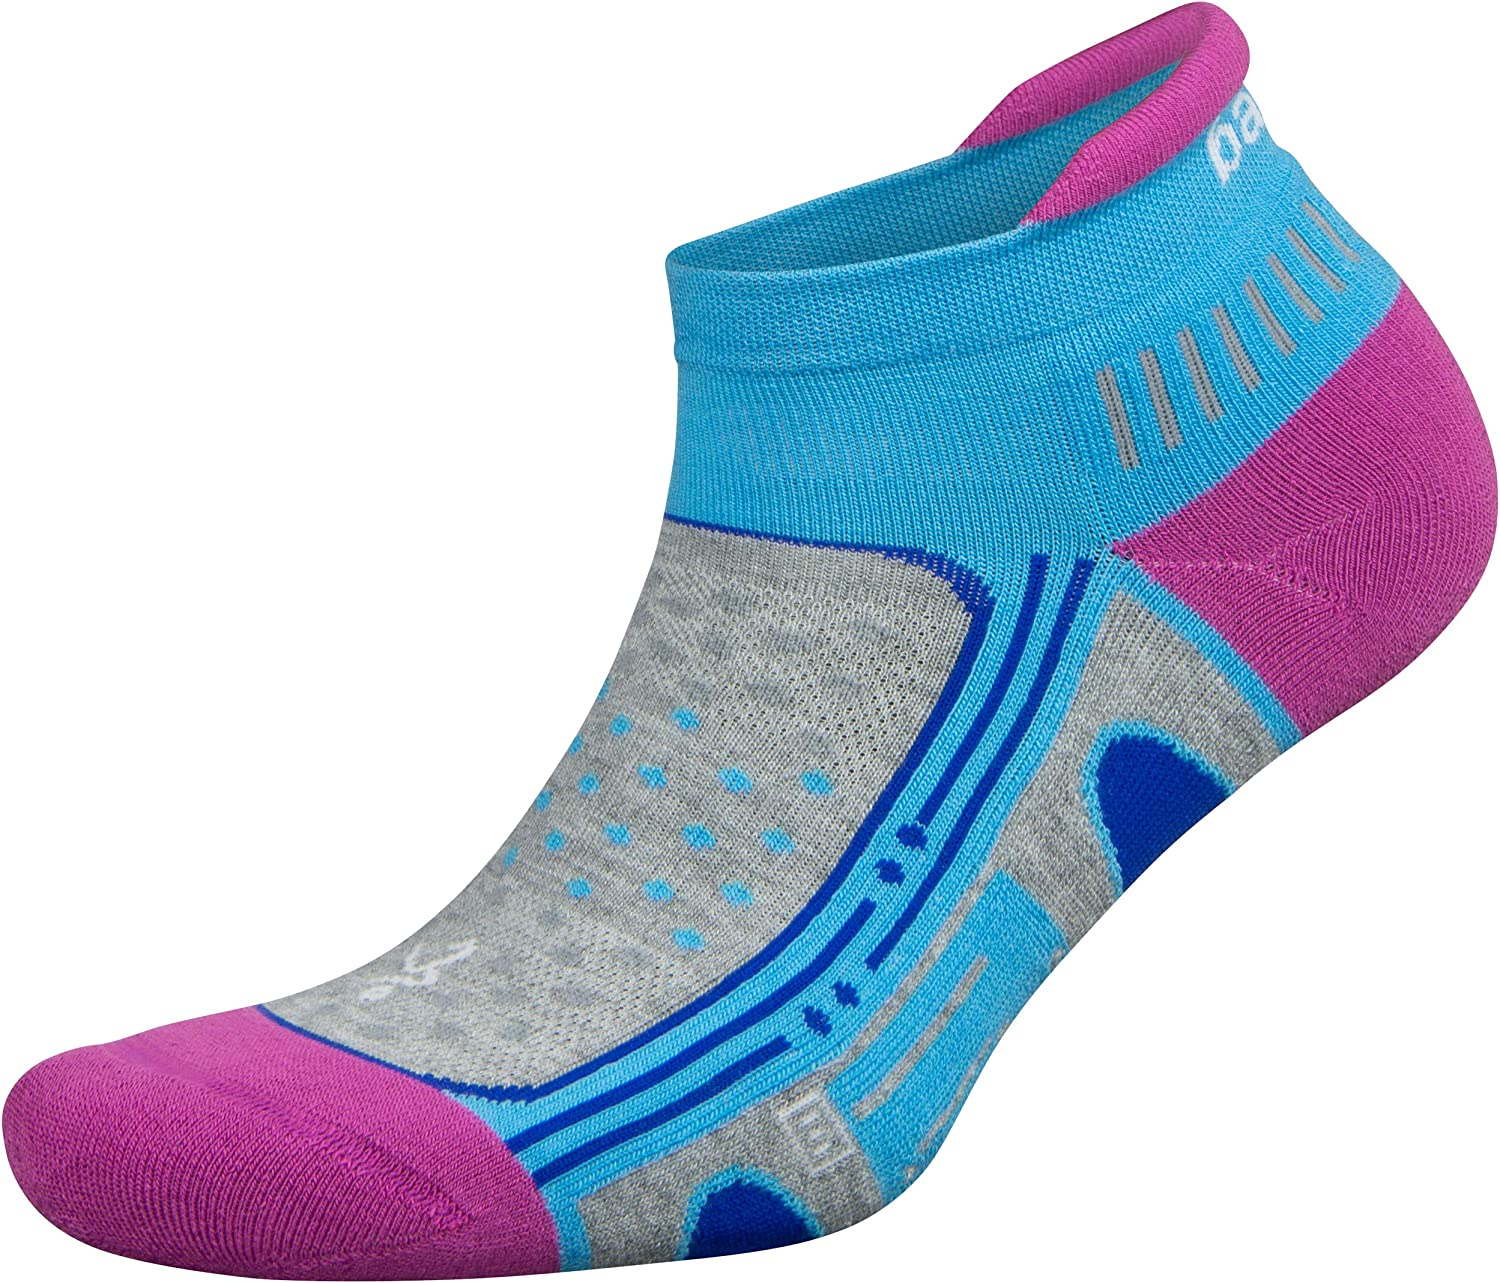 Balega Women's Enduro V-Tech No Show Socks (1 Pair)